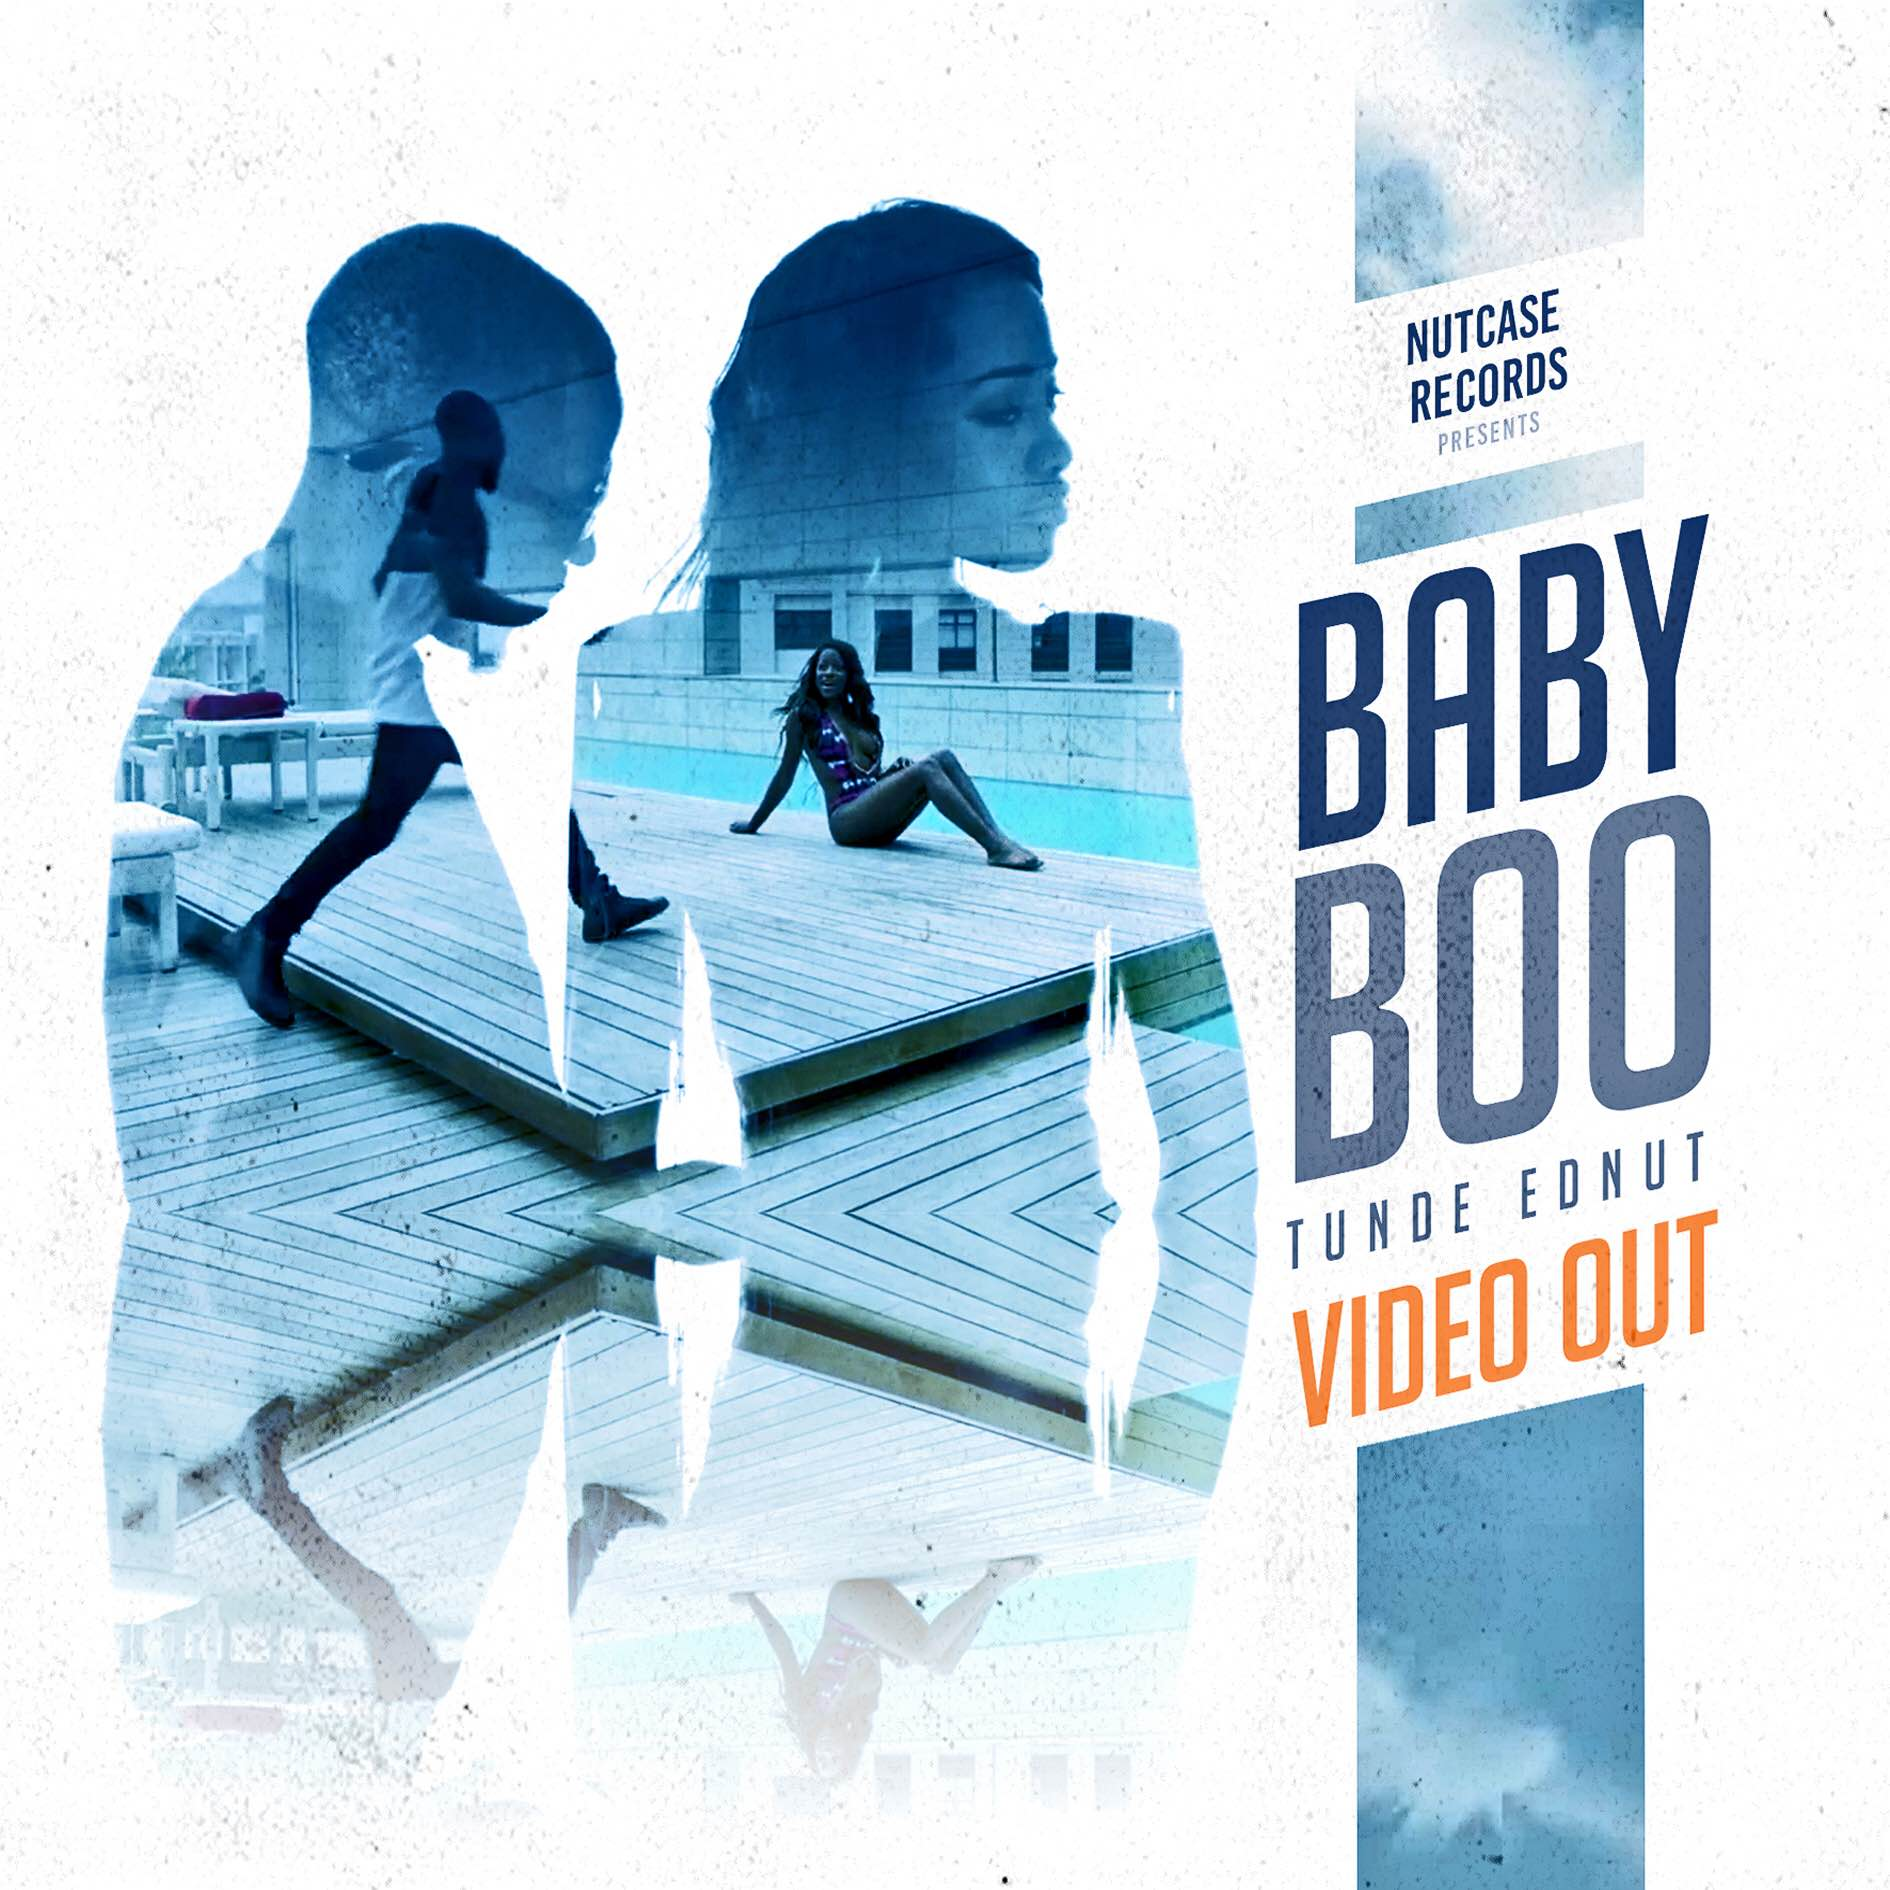 Baby Boo by Tunde Ednut (Video + Song)